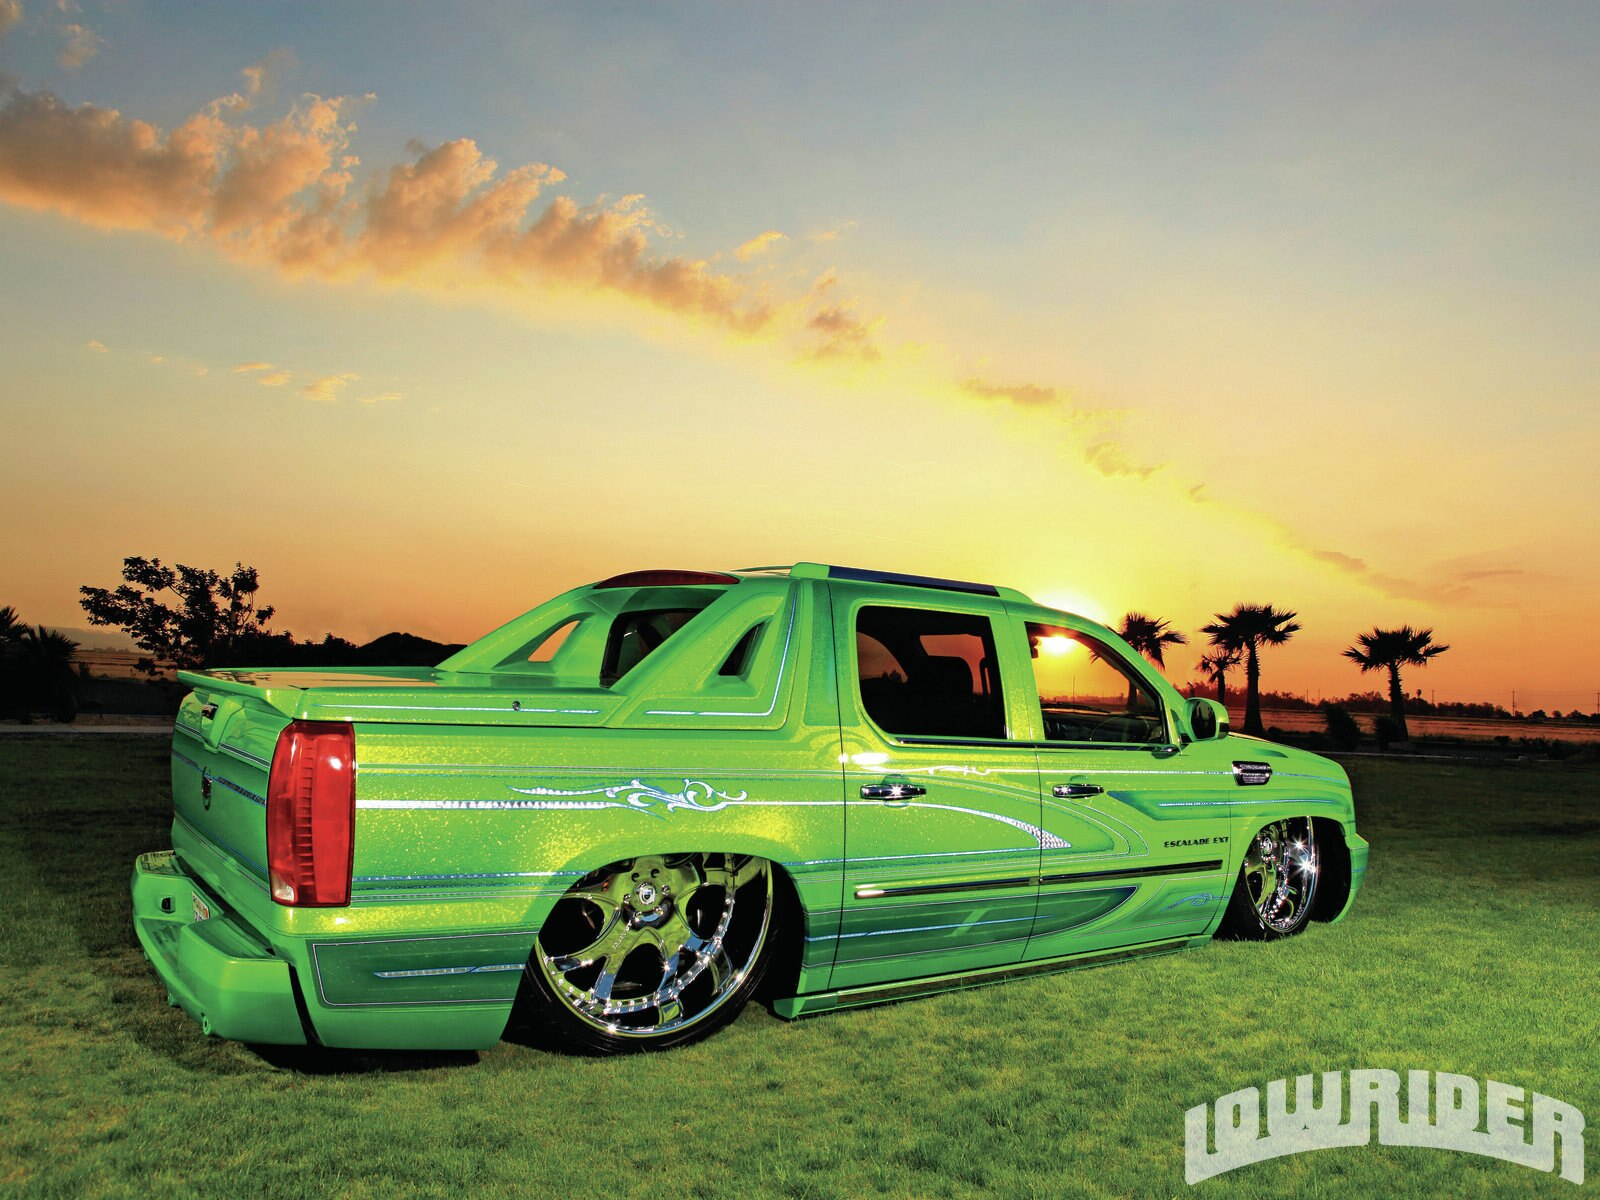 Girls And Lowrider Wallpaper Pic 2009 Cadillac Escalade Ext Lowrider Magazine